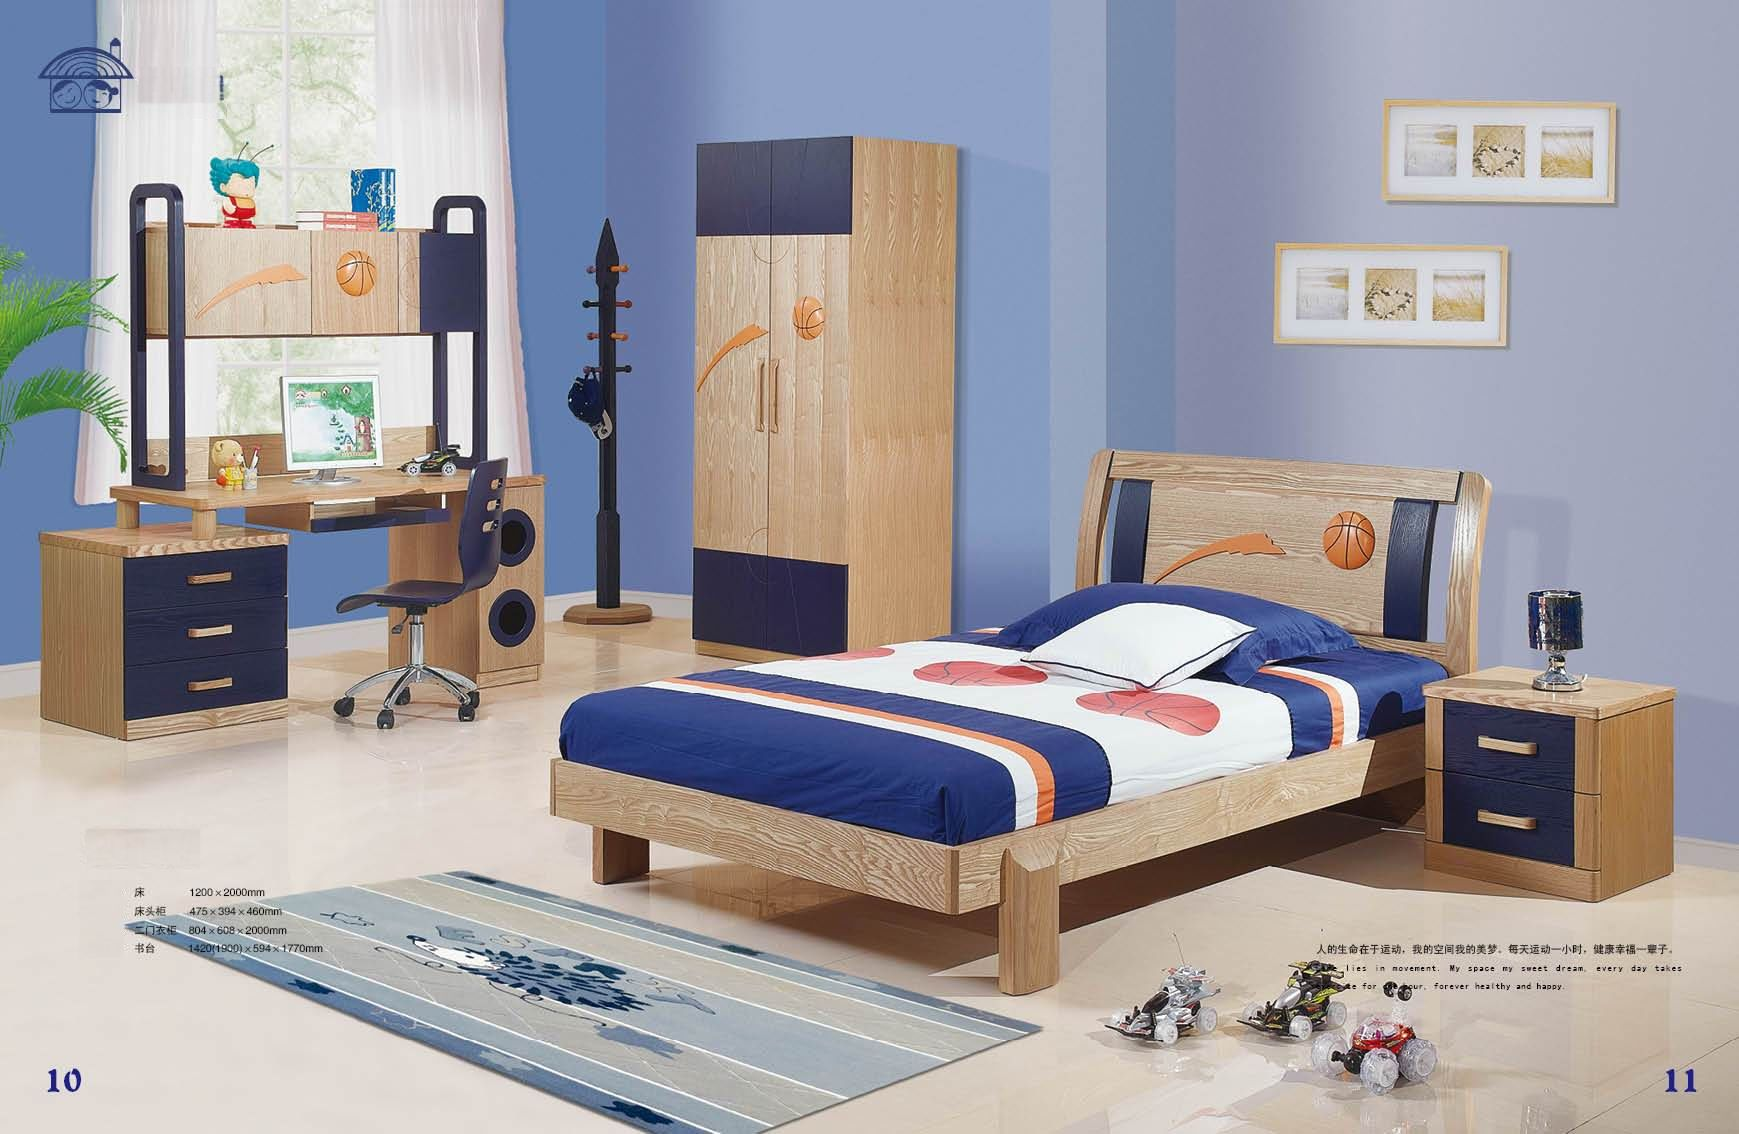 Youth Bedroom Furniture Kids Bedroom Set JKD China - Kids bedroom